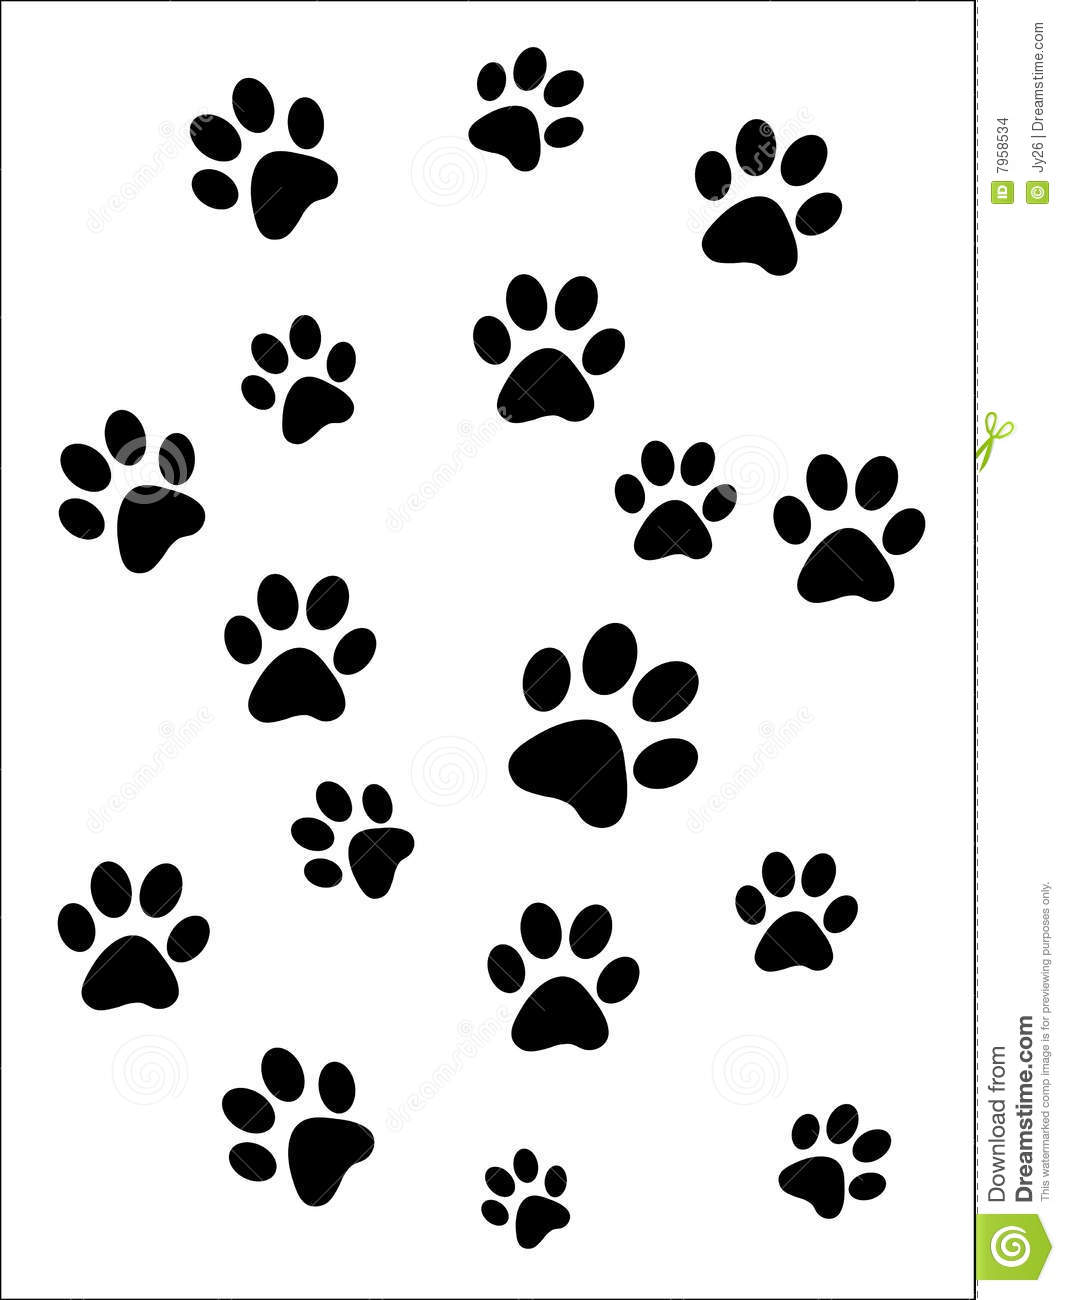 Paw Prints Stock Images - Image: 7958534